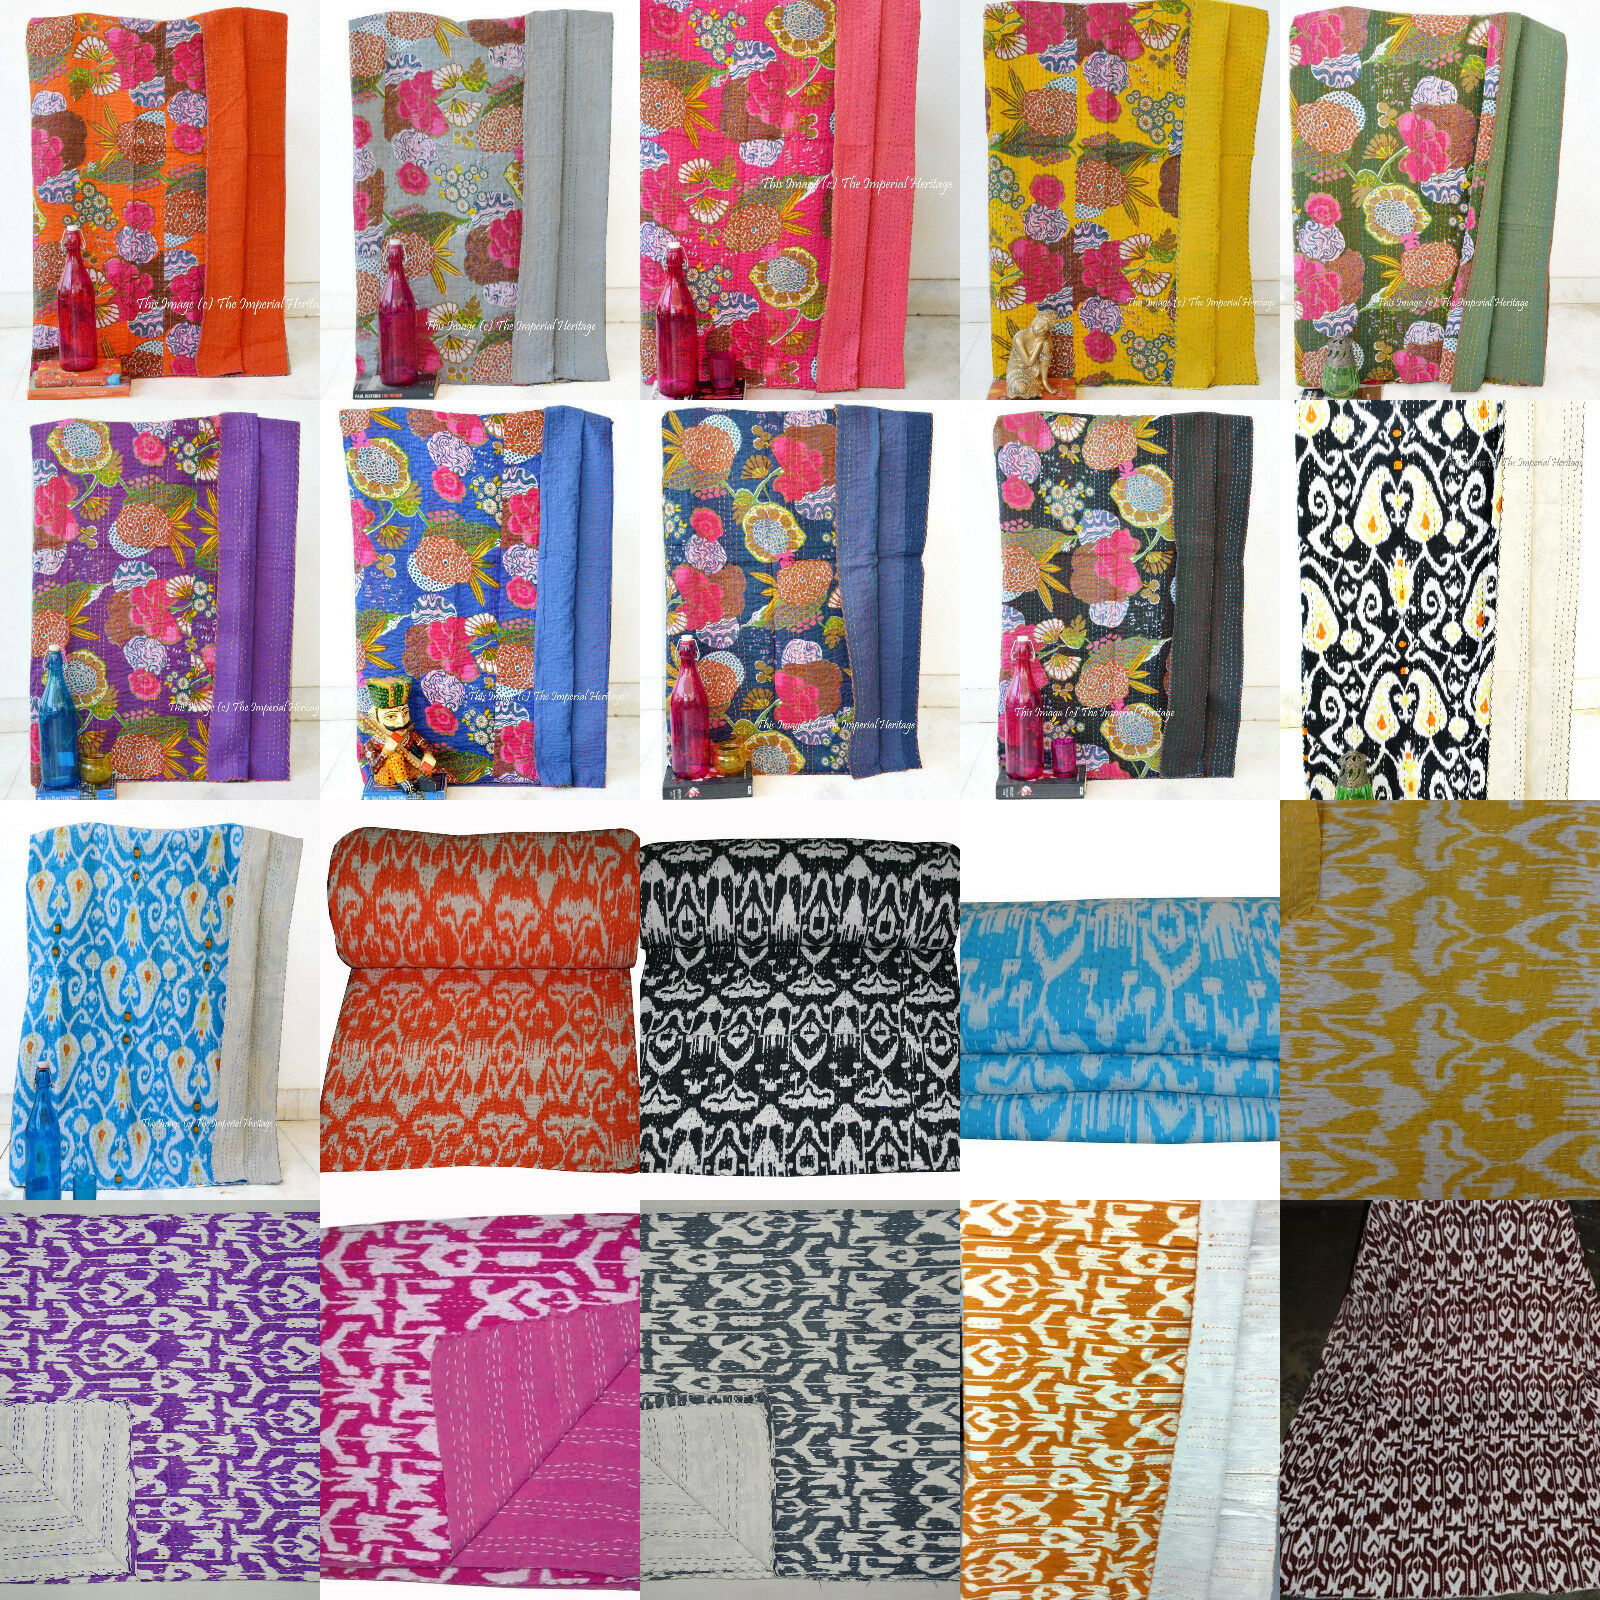 Indian Handmade Cotton Kantha Floral Bed Cover,Quilt,Twin Size Blanket Throw